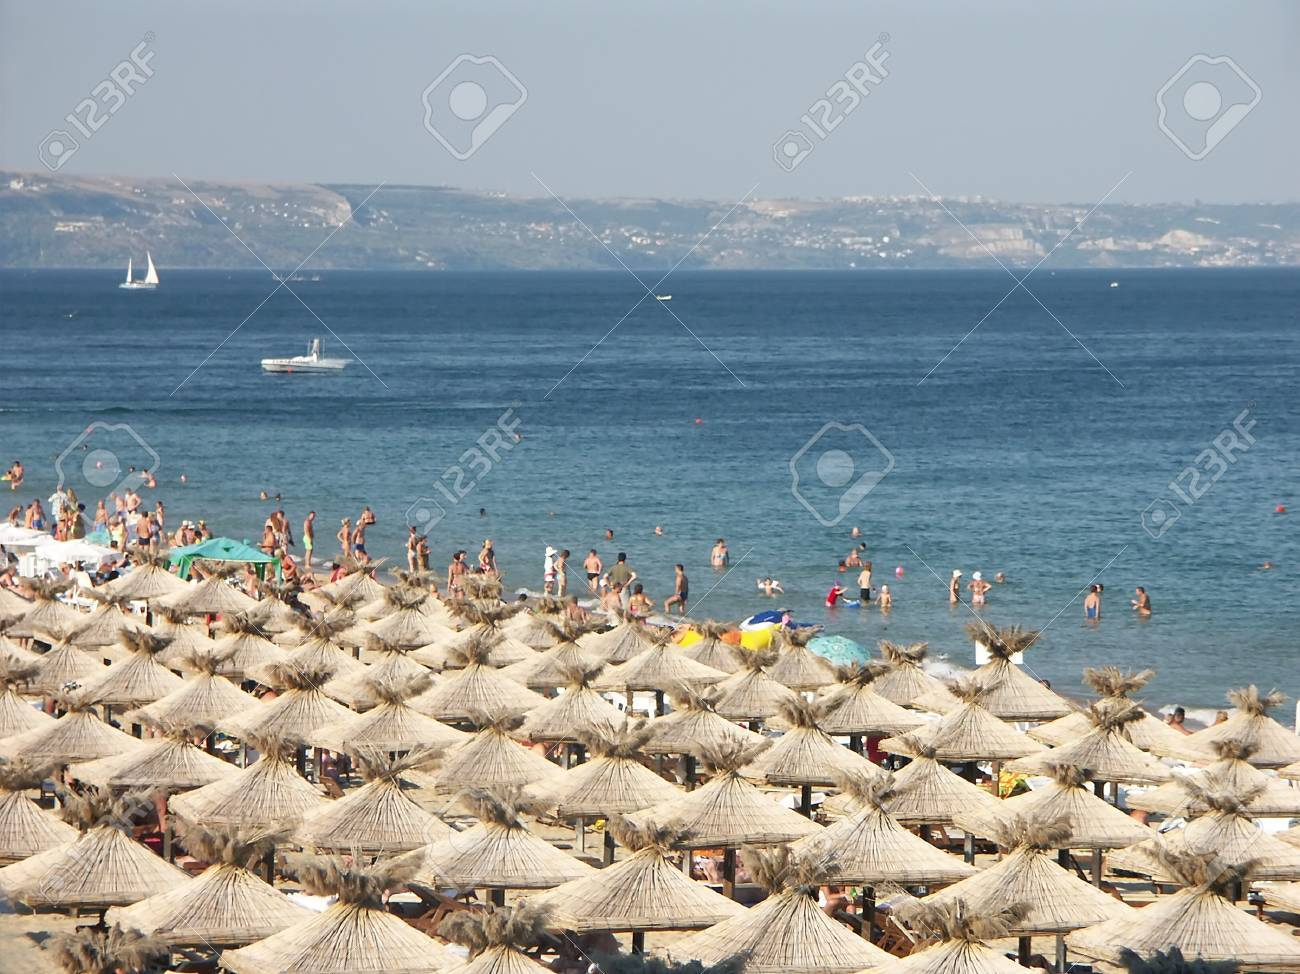 Golden Sands beach with rows of straw shade umbrellas in Bulgaria Stock Photo - 4187755